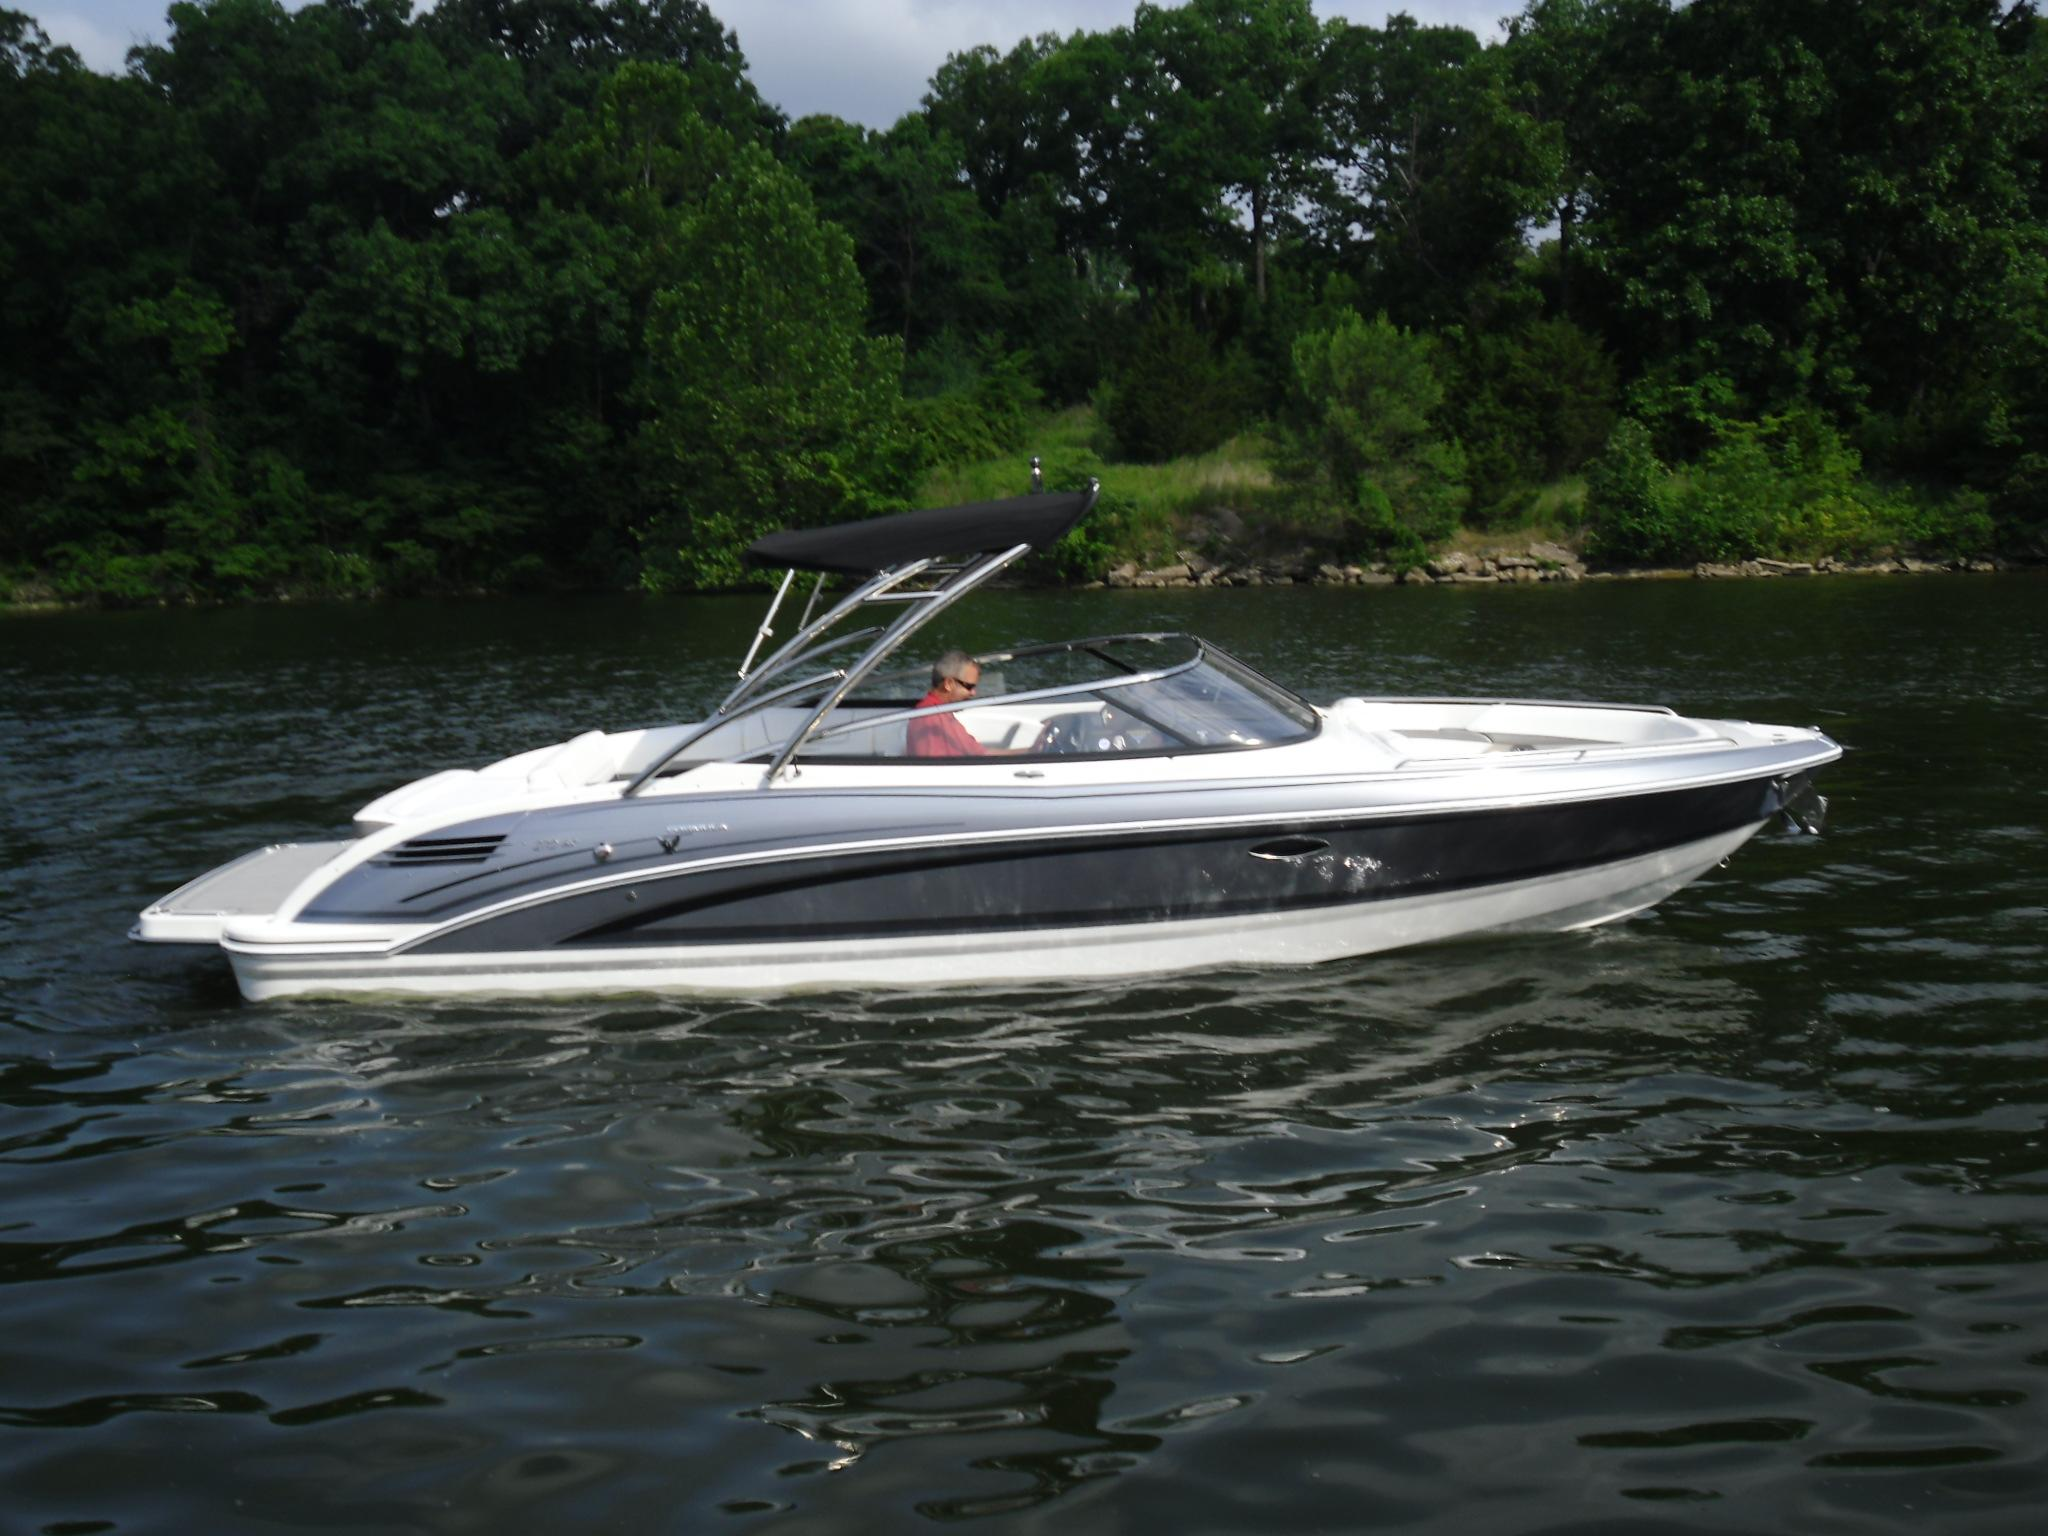 Osage Beach (MO) United States  city pictures gallery : 2016 Formula 270 Bowrider Power Boat For Sale www.yachtworld.com